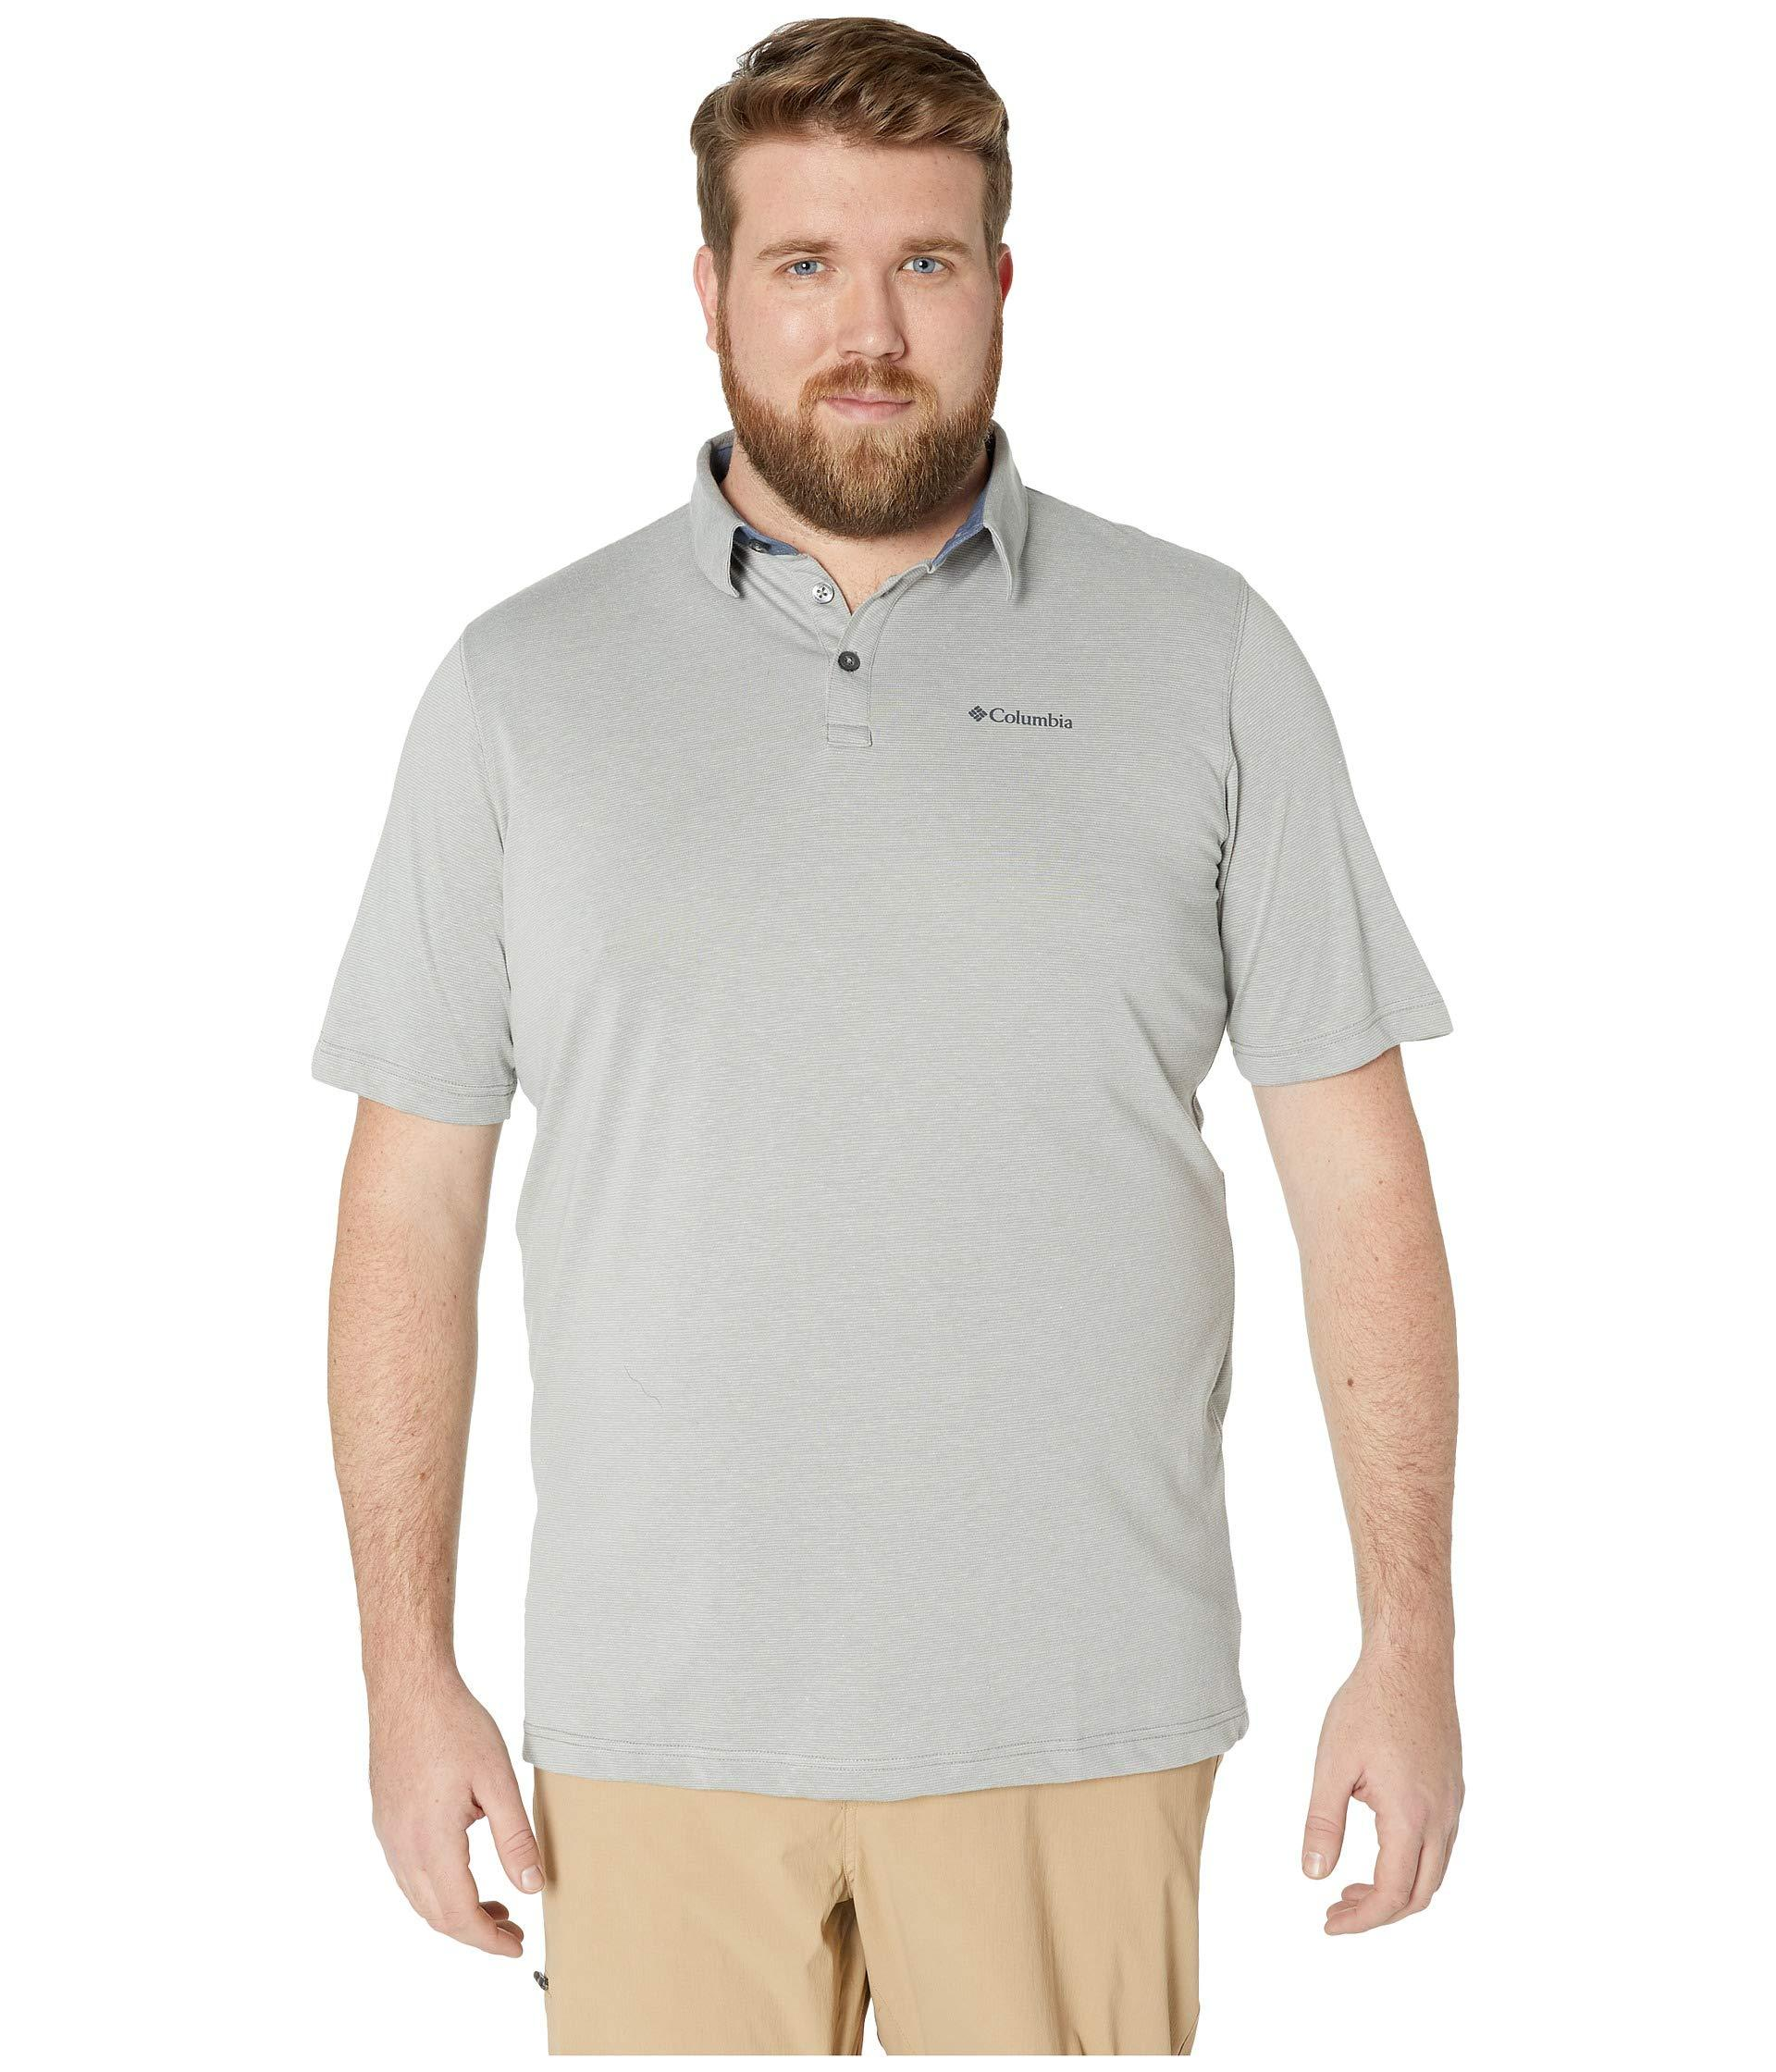 928d54148 Columbia - Gray Big Tall Thistletown Ridgetm Polo (impulse Blue) Men's  Short Sleeve Knit. View fullscreen